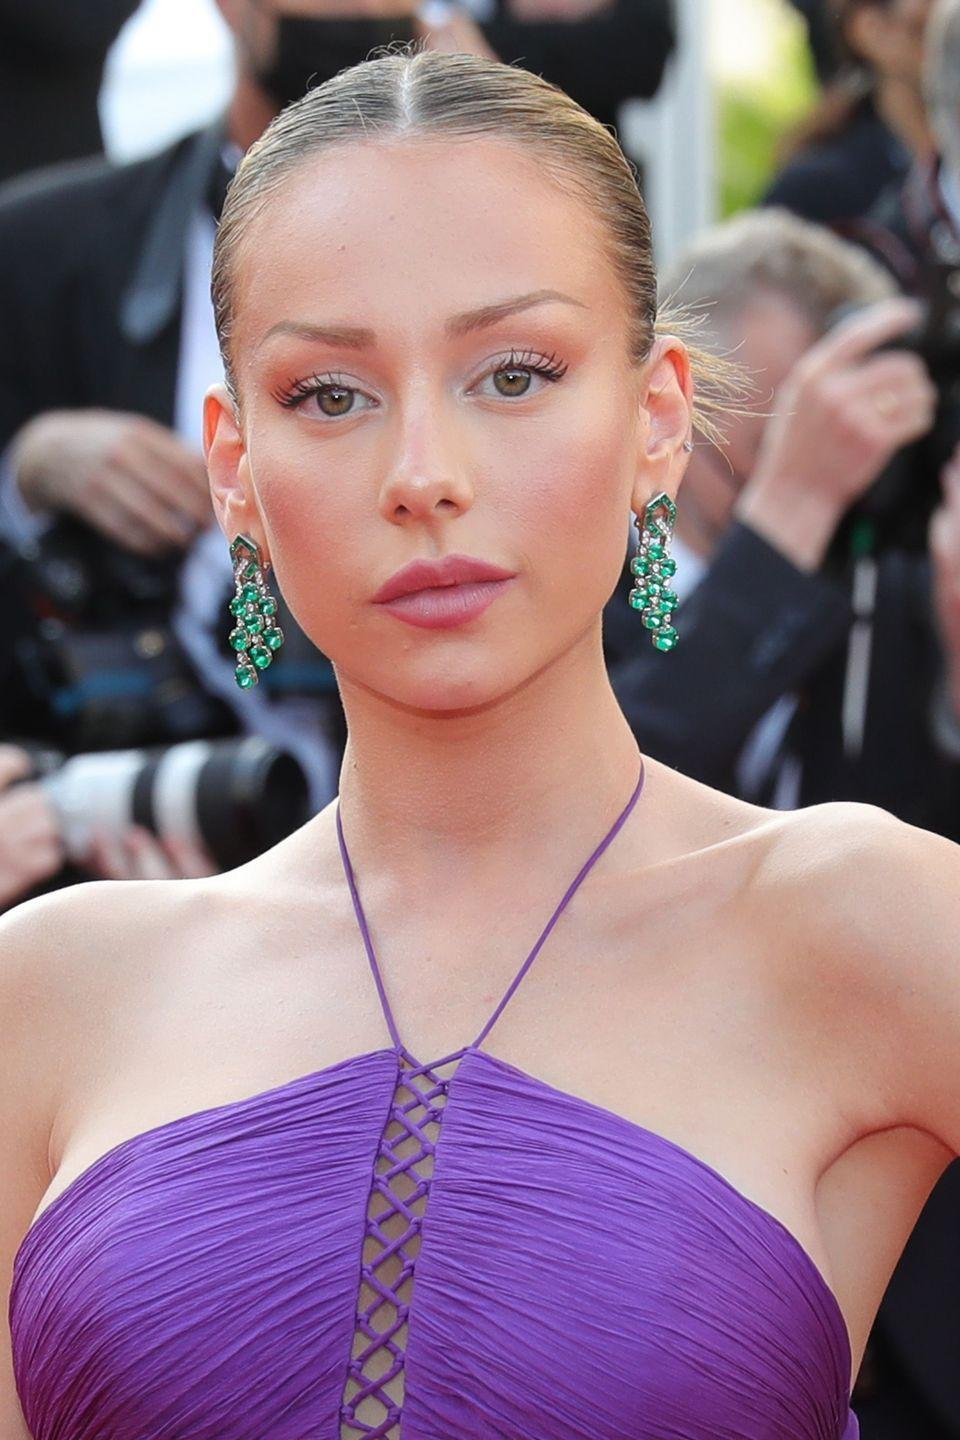 <p>Yet more emeralds and diamonds lit up the red carpet at the screening of Annette, as Spanish star Ester Expósito arrived wearing an exquisite pair of fringed earrings by Bulgari. </p>